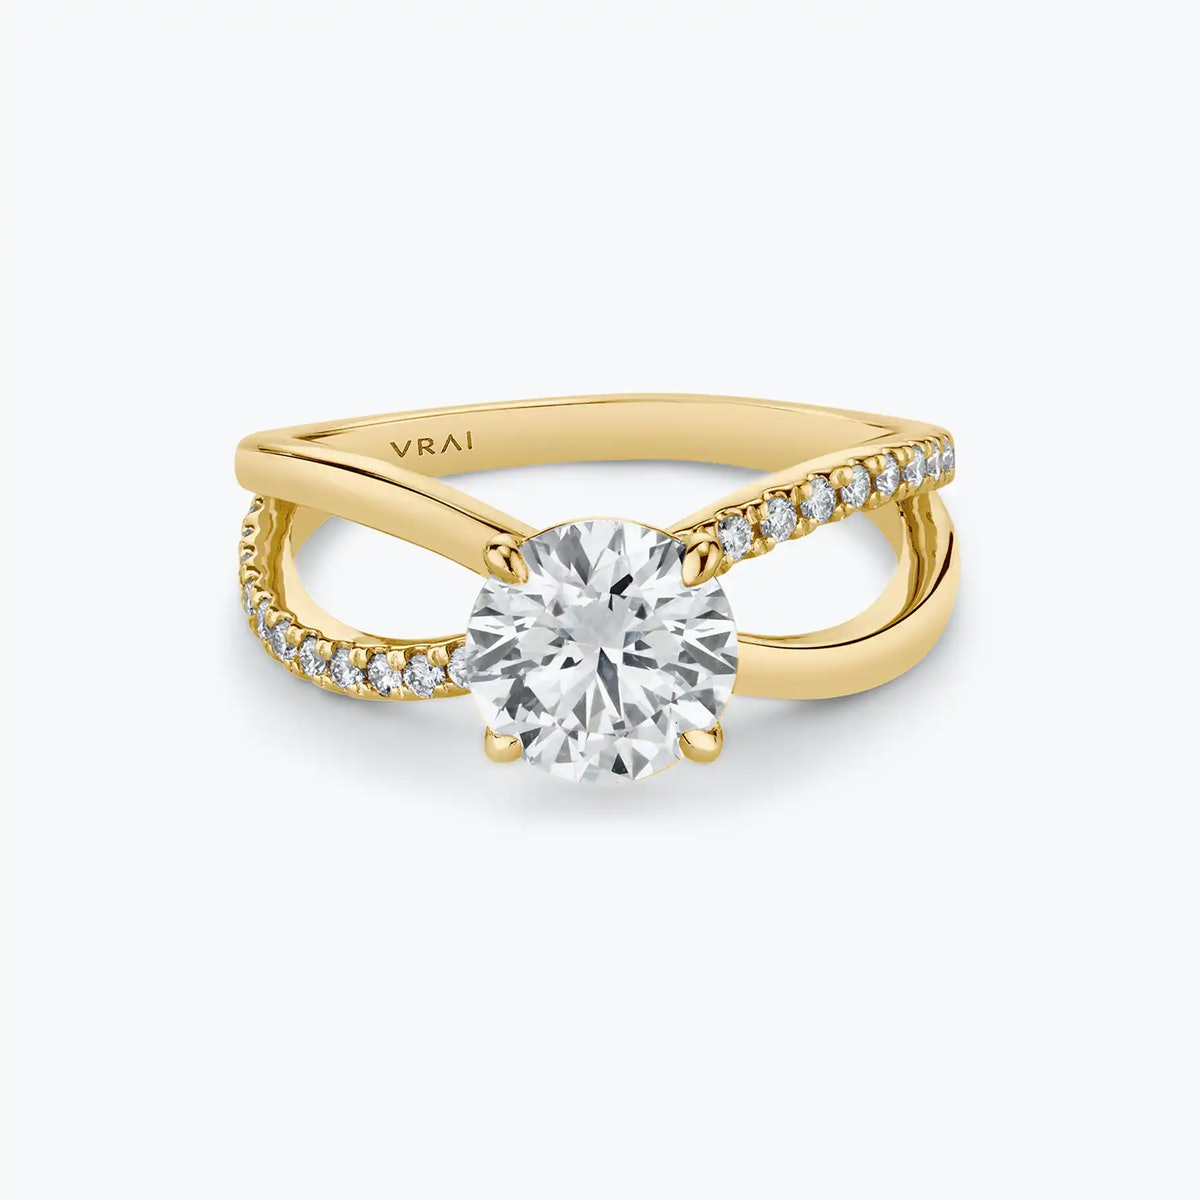 The Duet twist diamond engagement ring from VRAI.